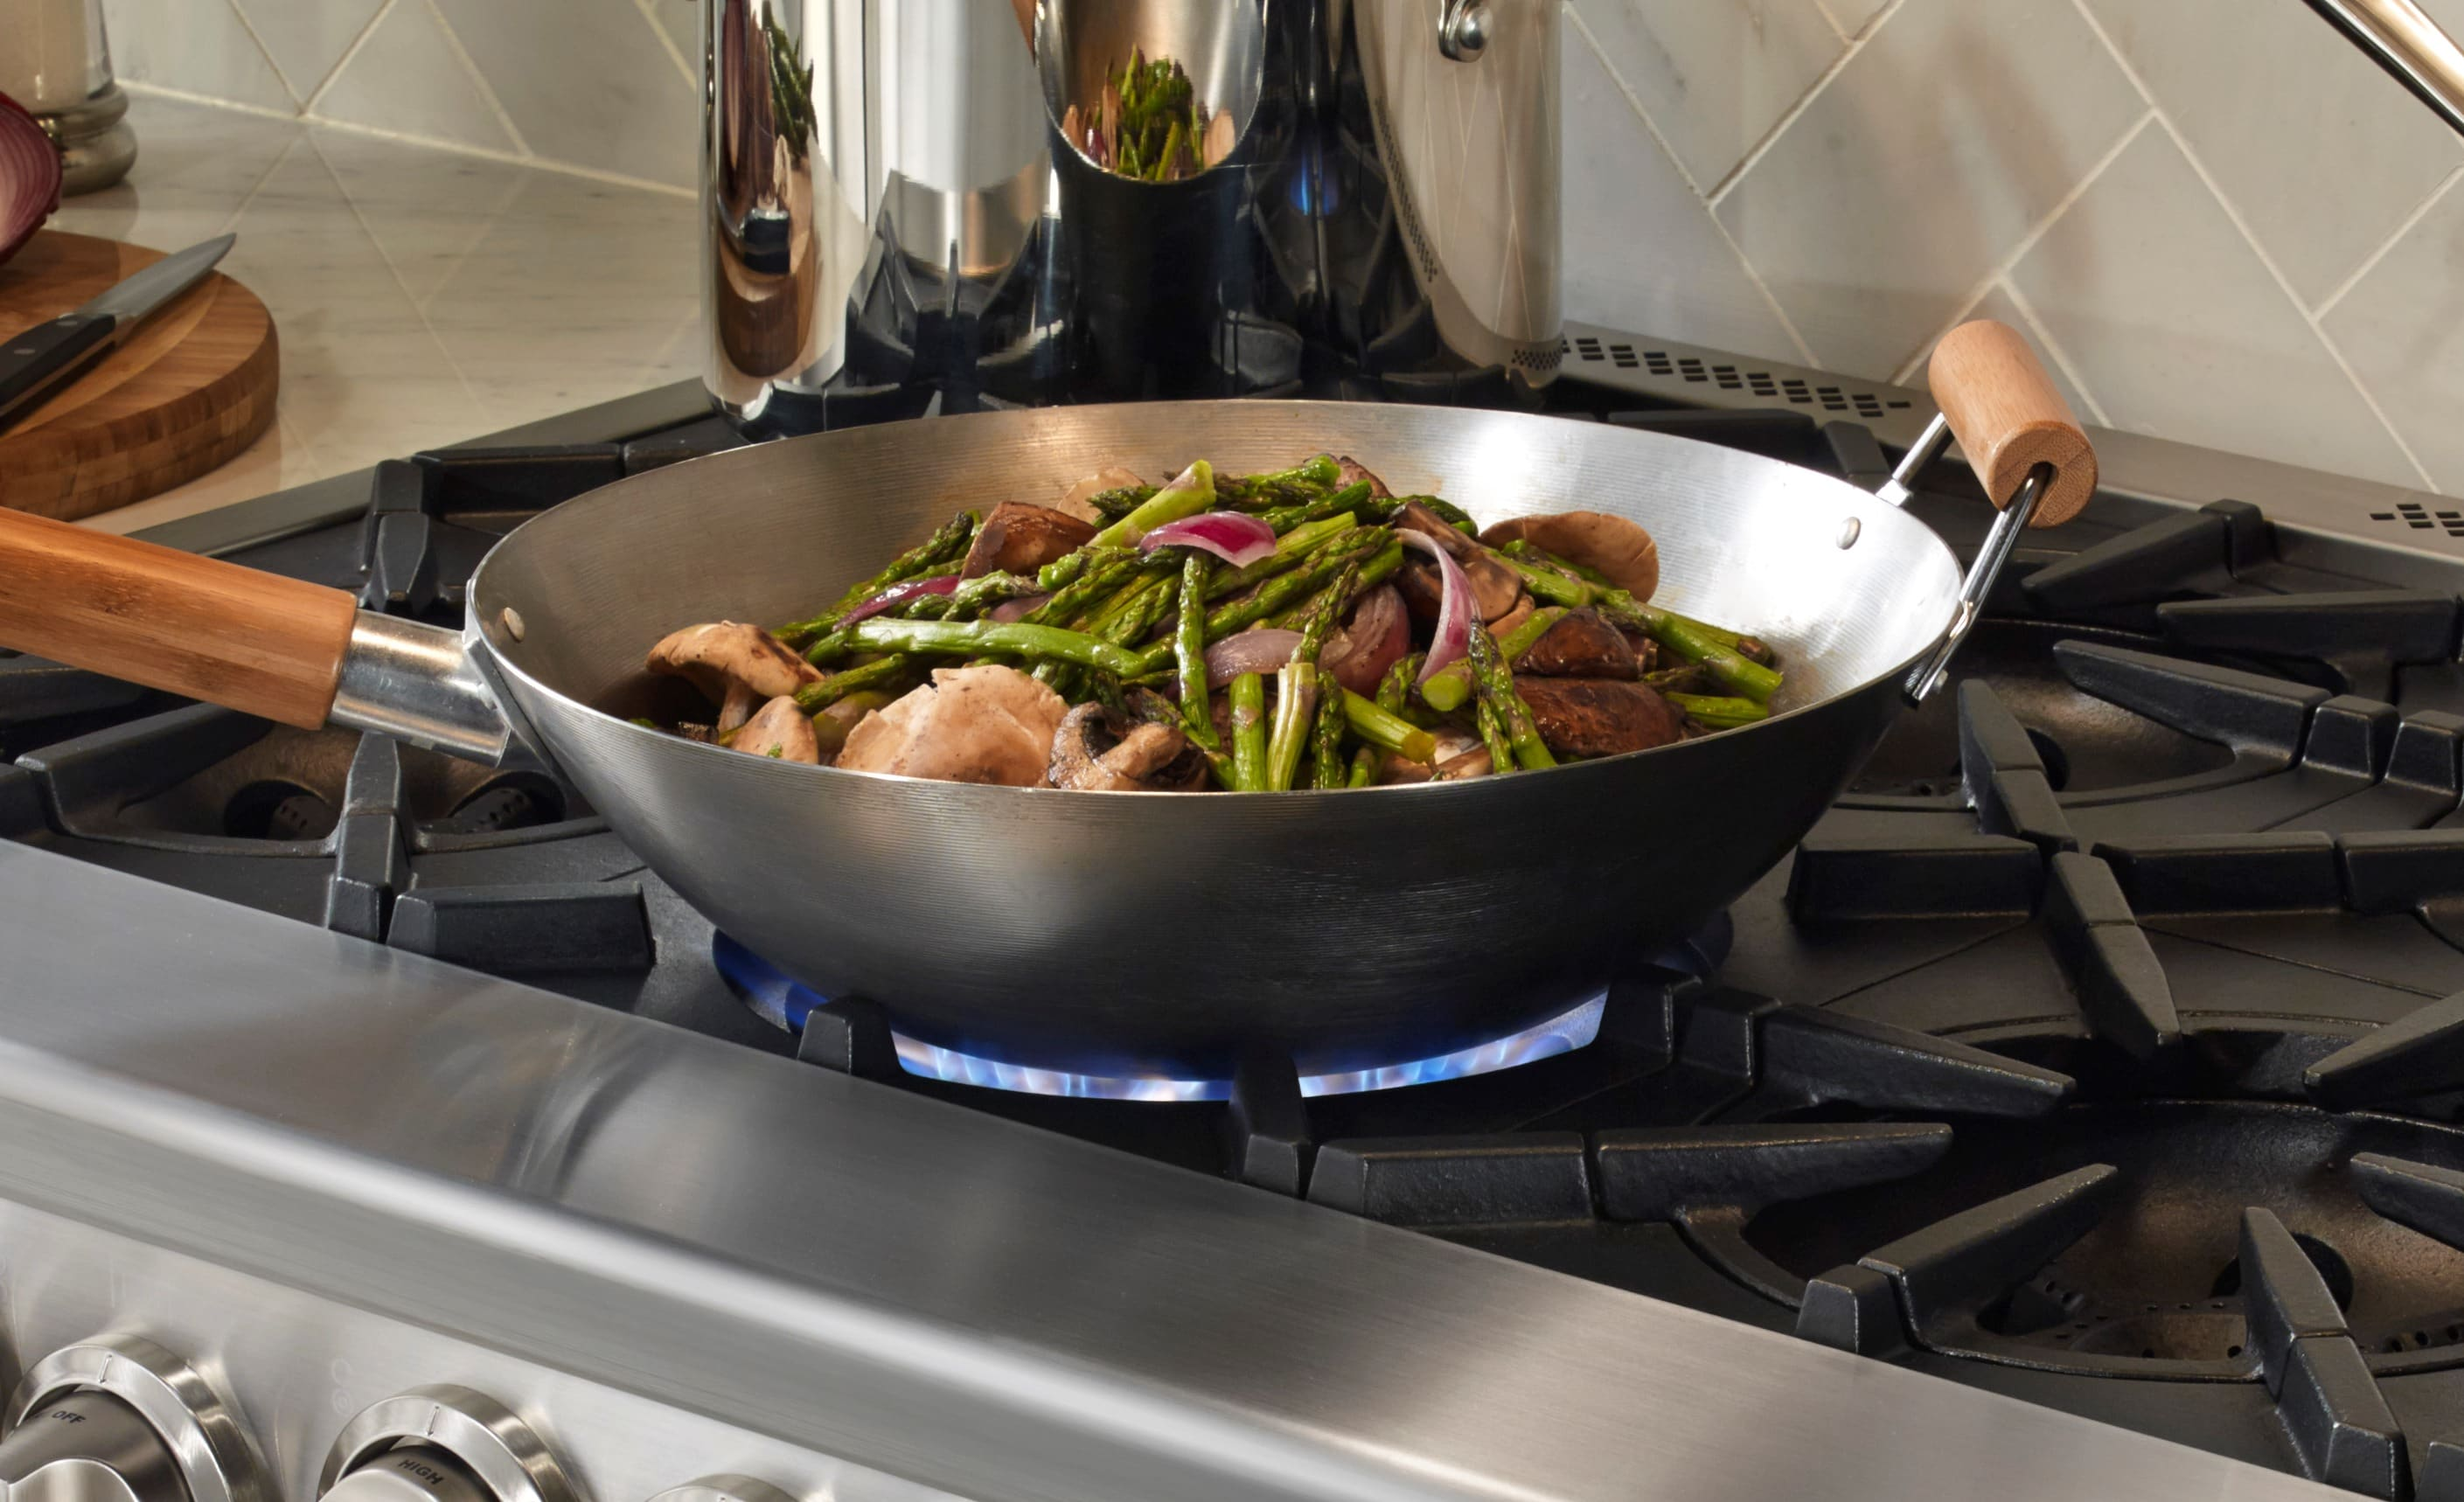 . BlueStar's integrated wok cooking feature allows you get the bottom of the pan directly over the flame.